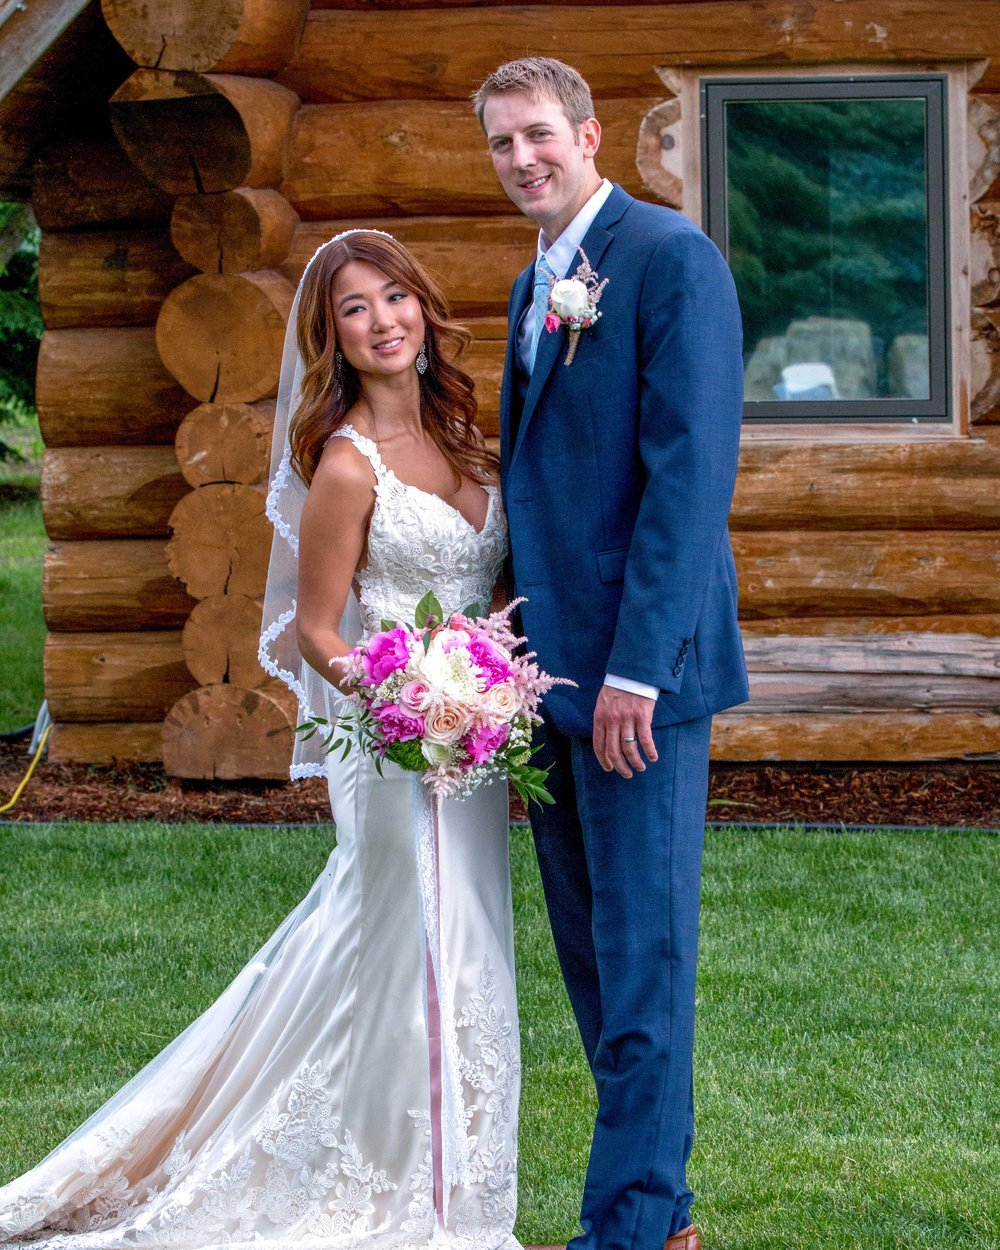 Minnesota Wedding at Glenhaven, outdoor ceremony, Fab Weddings, bride and groom portraits